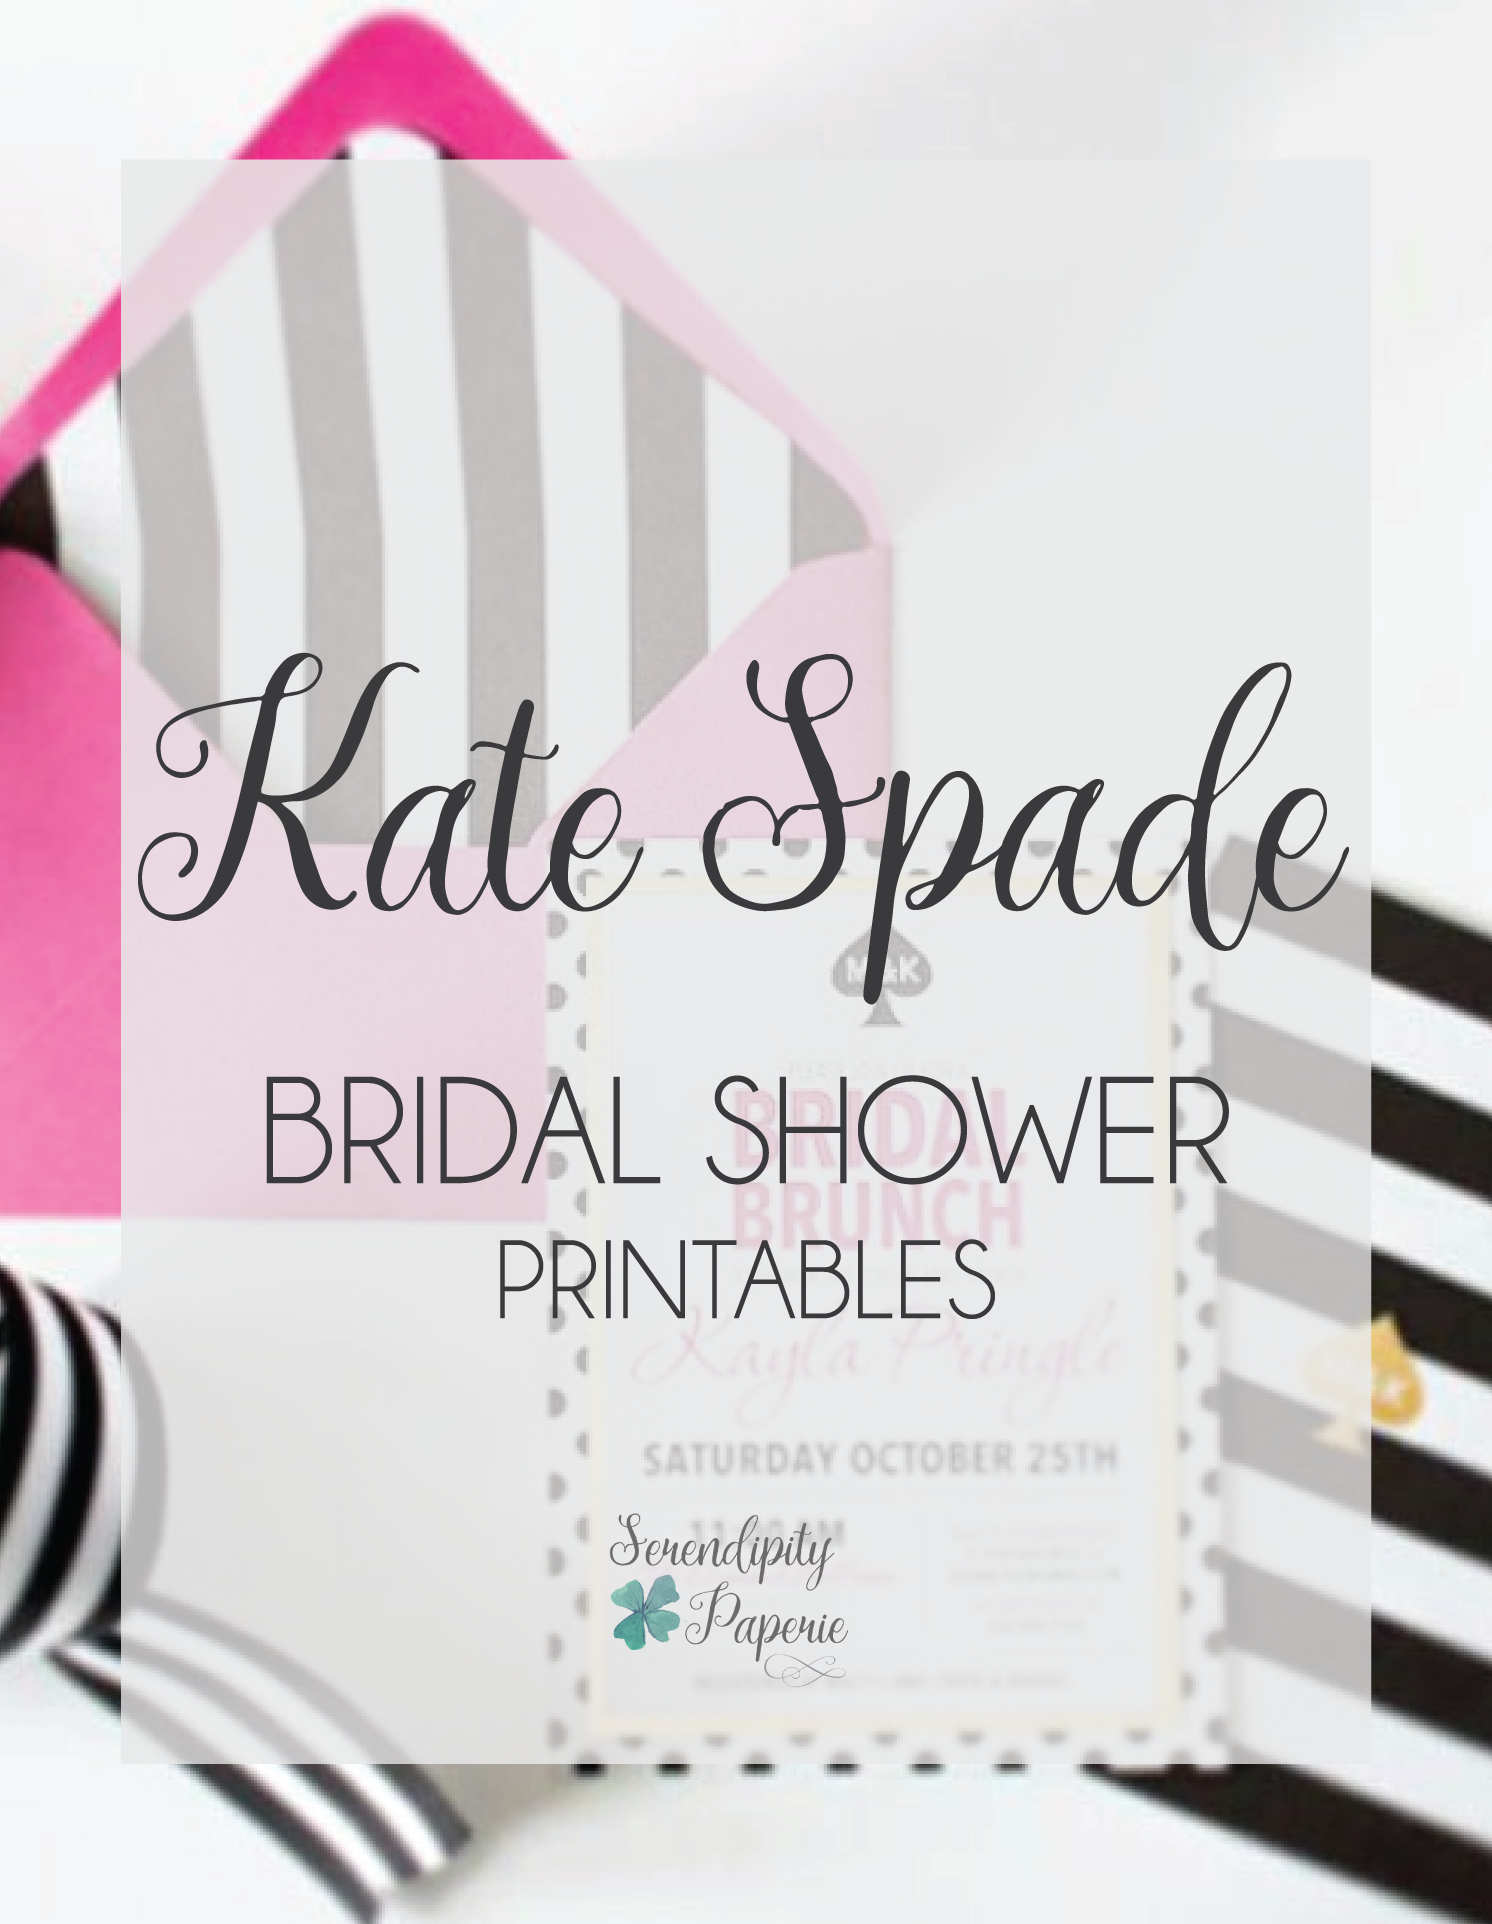 Kate Spade Inspired Bridal Shower Invitations by Serendipity Paperie ...